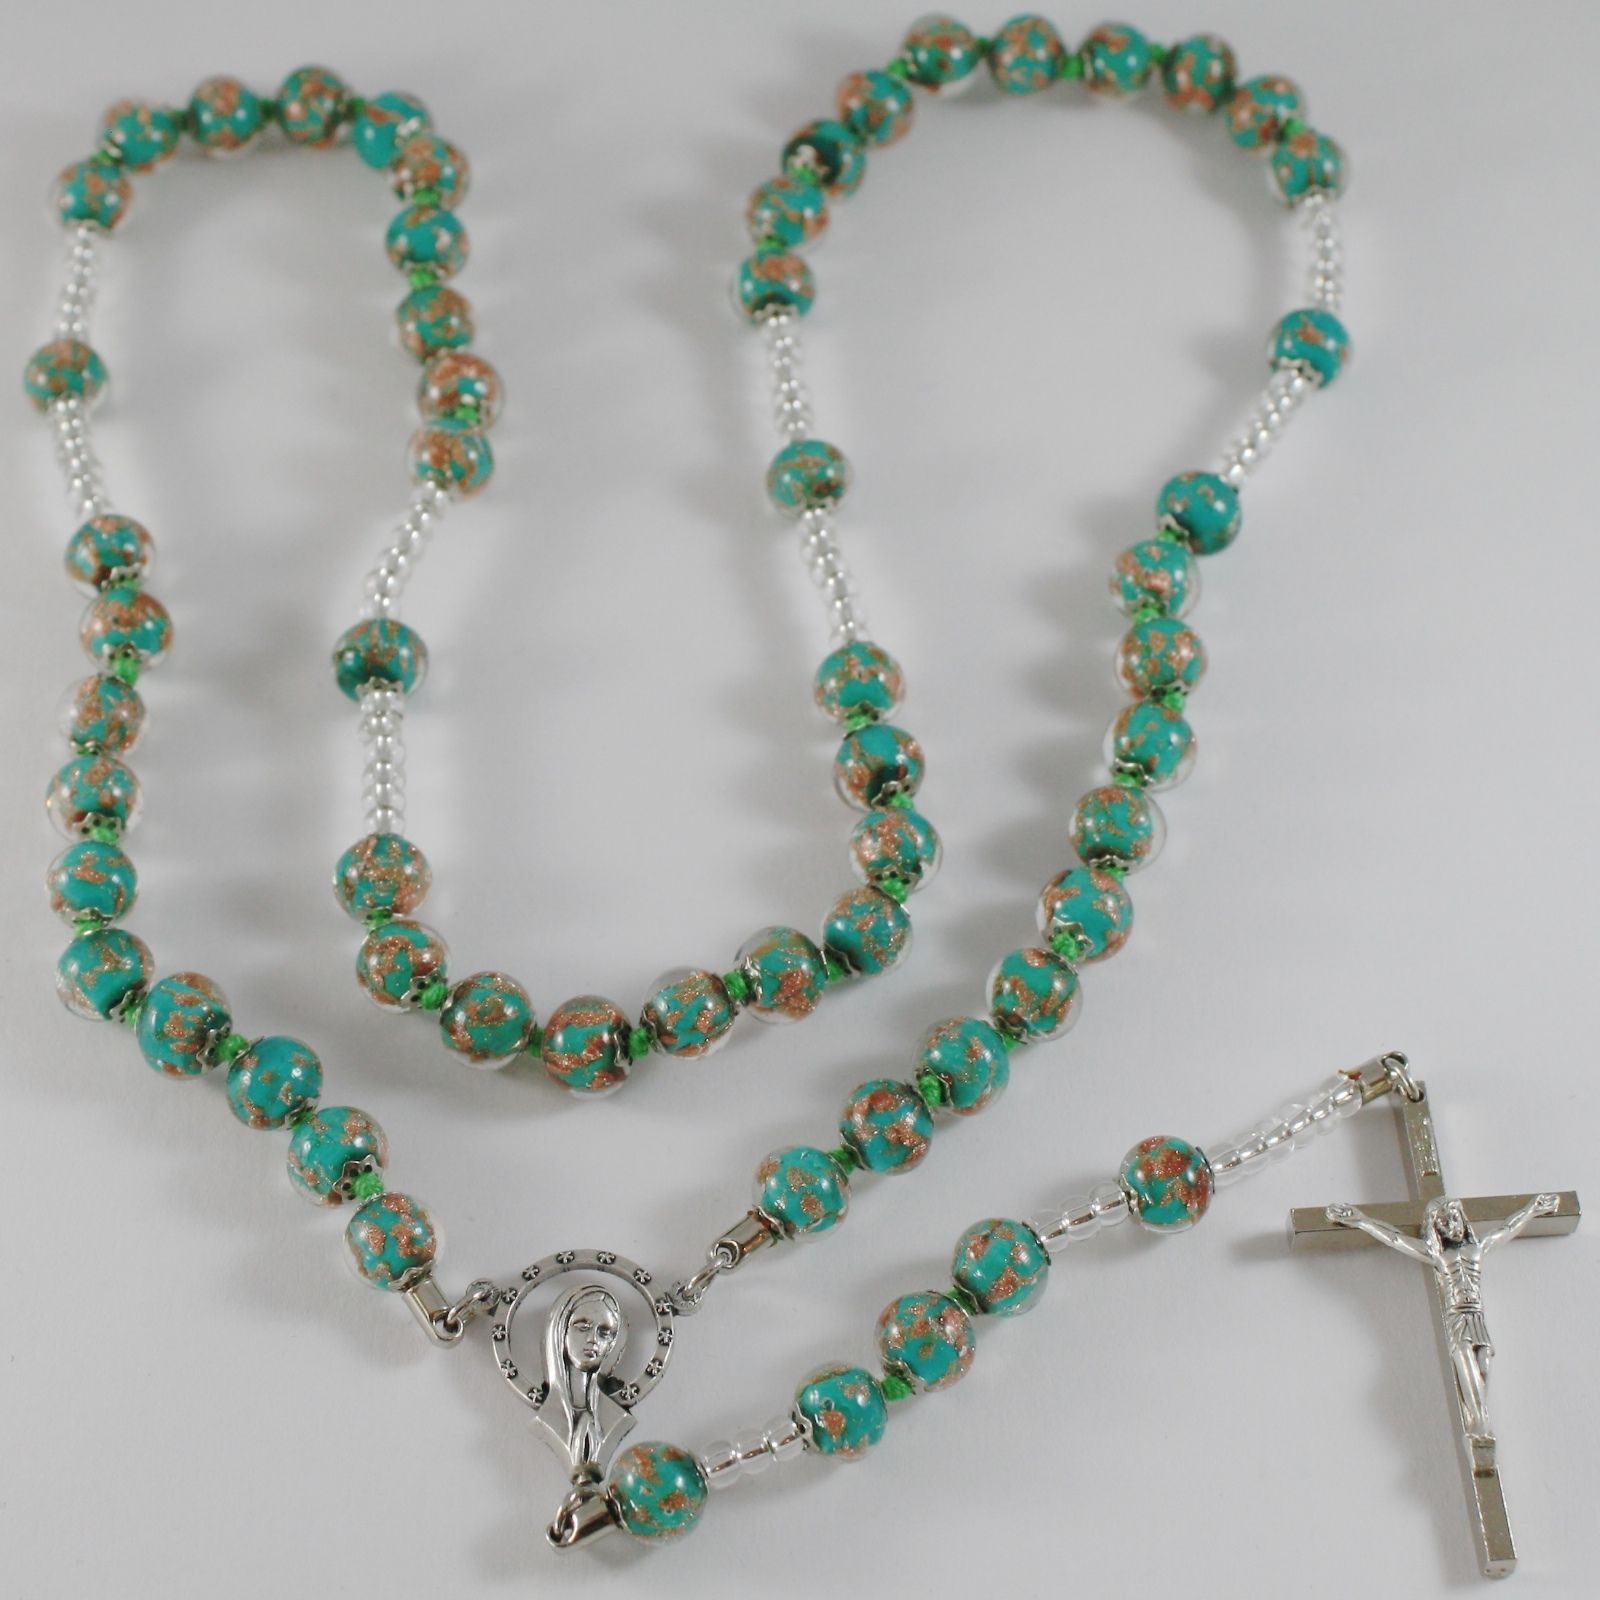 ANTICA MURRINA VENEZIA ROSARY NECKLACE, GREEN VIRGIN MARY JESUS CROSS 27.5 INCH.